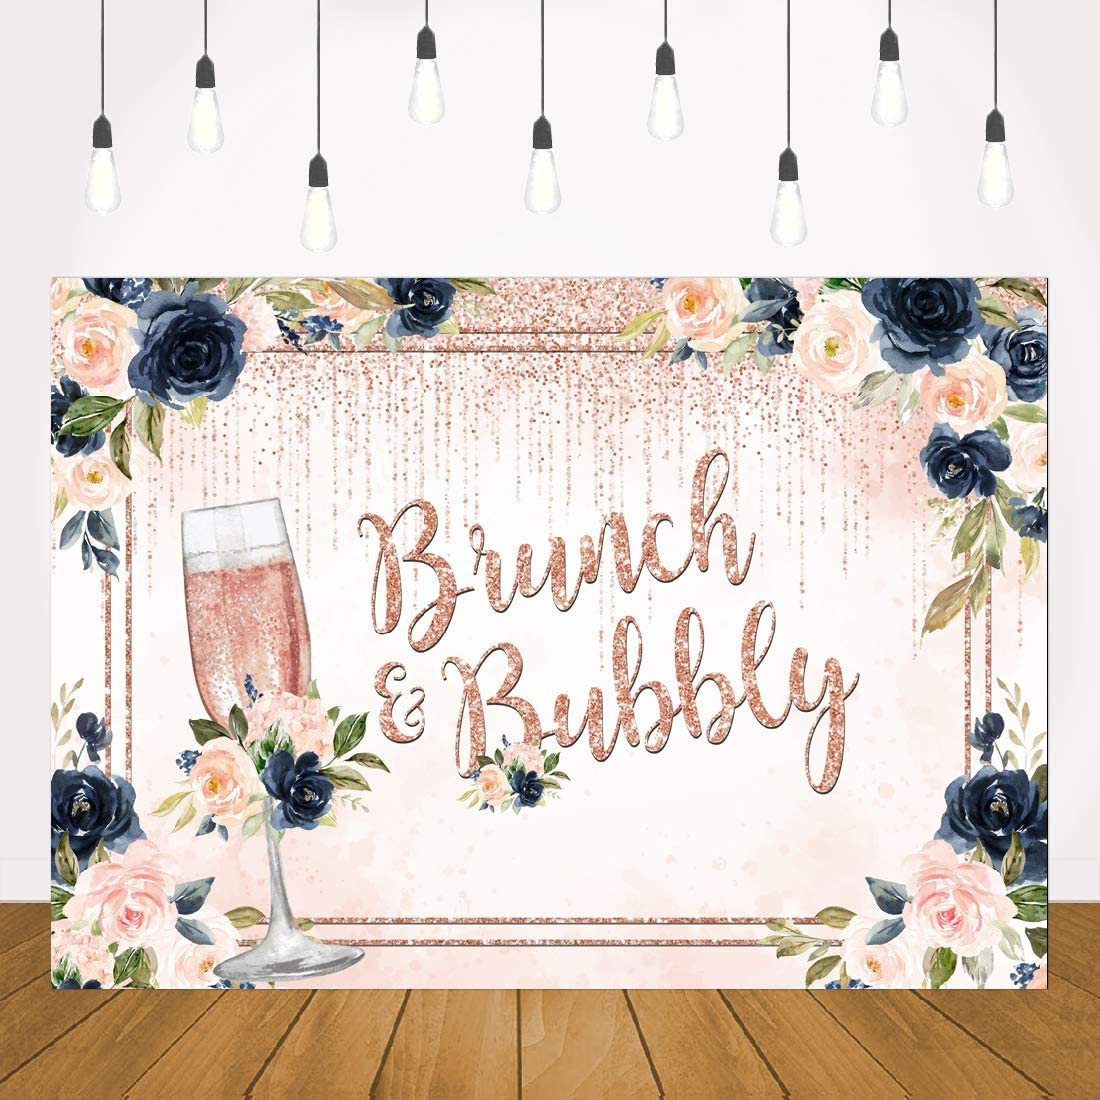 Lofaris Brunch and Bubbly Bridal Shower Backdrop Navy Blue and Blush Pink Floral Glitter Champagne Background Wedding Bachelorette Flower Party Decor Banner Supplies Photo Booth Prop Pictures 7x5ft